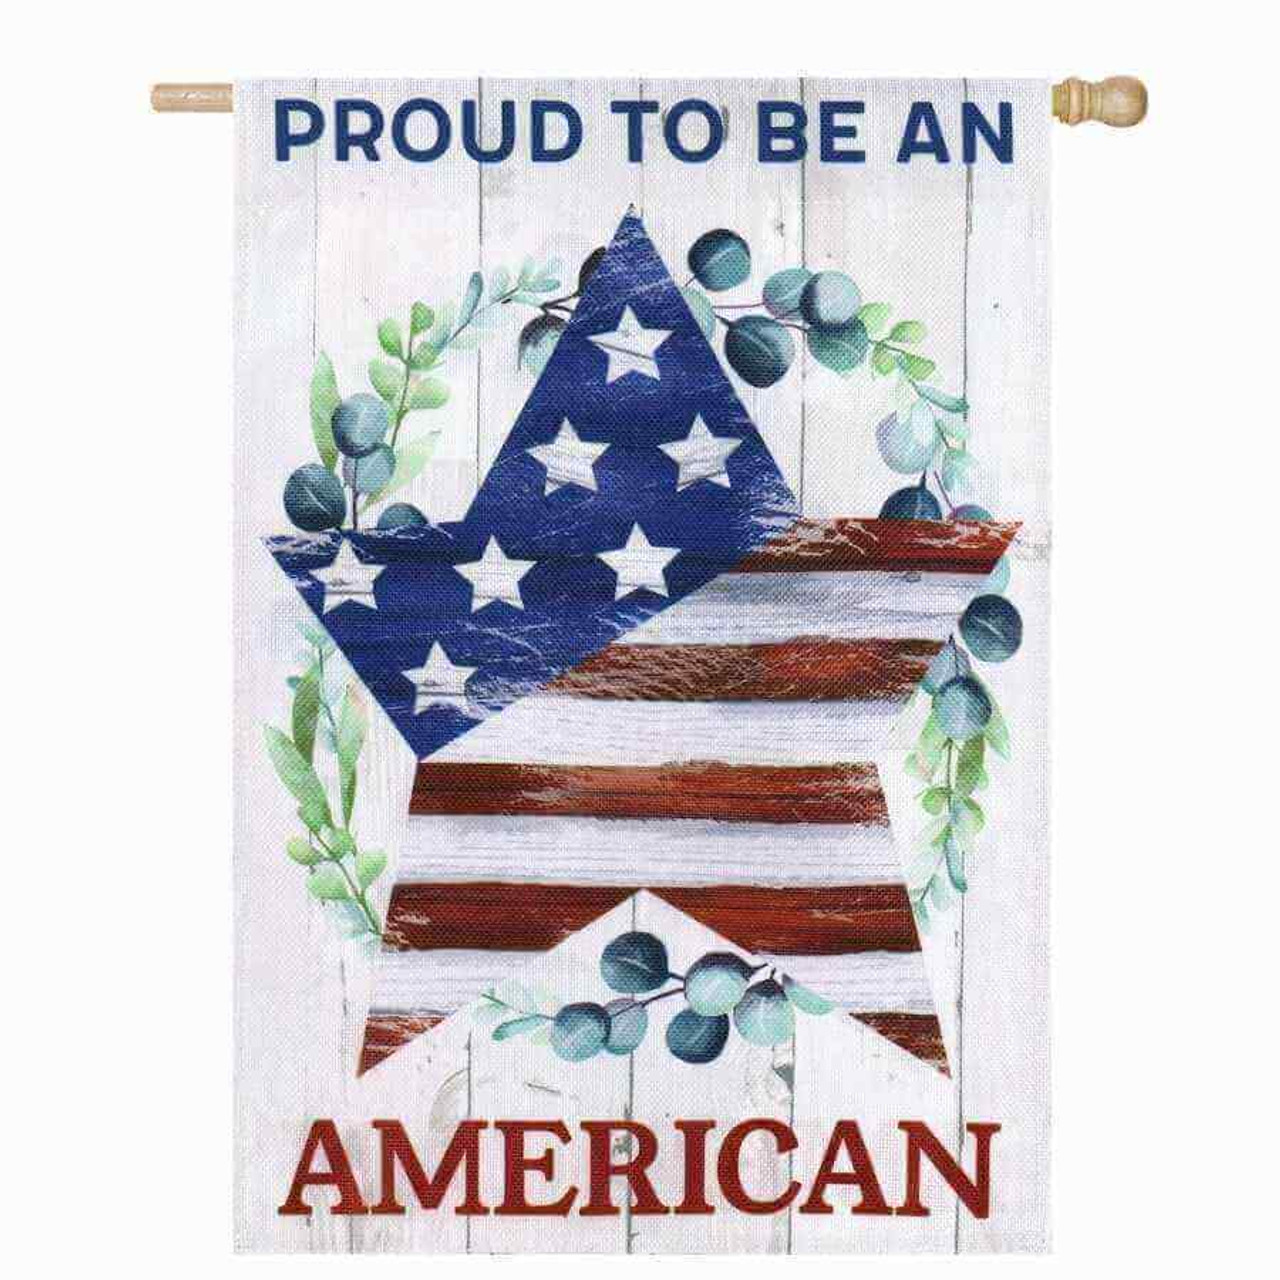 """A garden flag that has a star filled with the stars and stripes from the American flag. Around the star is a wreath of leaves and blueberries. The background is a white faux wood with """"Proud to be an"""" written on top in blue and """"American"""" written in red on the bottom."""